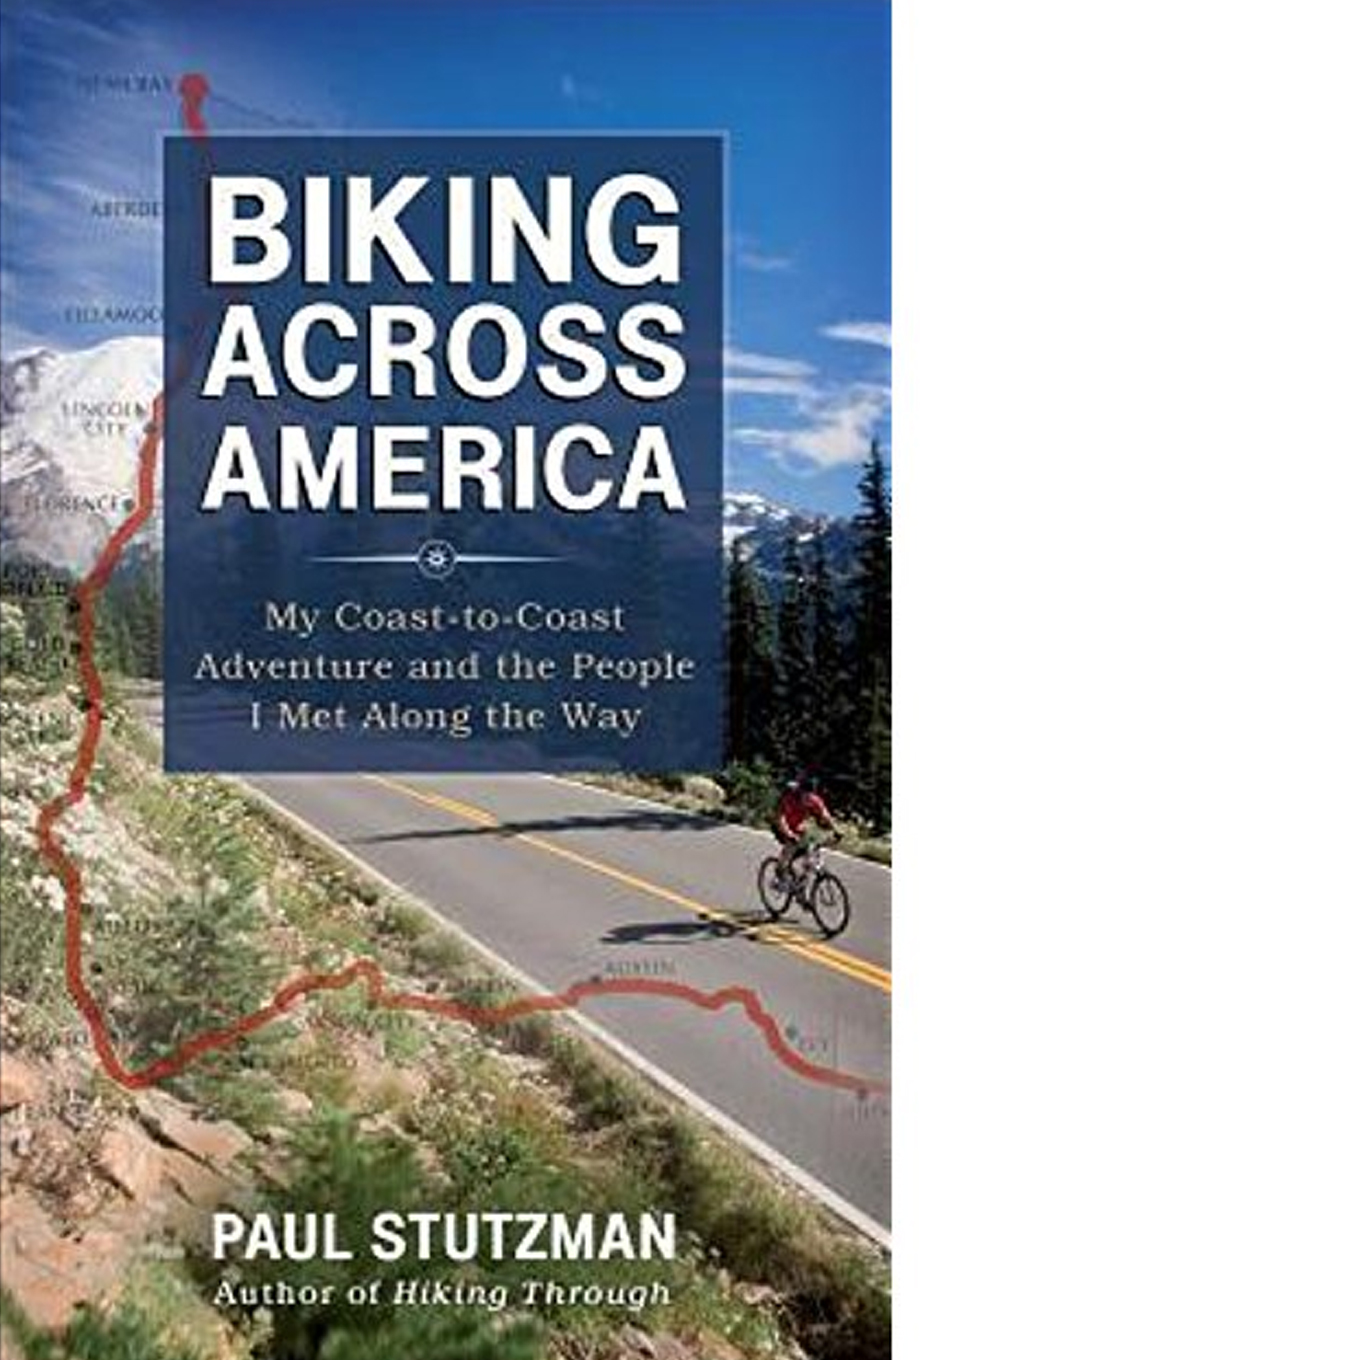 Biking Across America: My Coast-to-Coast Adventure and the People I Met Along the Way  -May 15, 2013  After taking readers down the Appalachian Trail, Paul Stutzman brings them on a new adventure, biking from Neah Bay, Washington, to Key West, Florida, encountering fascinating people along the way.    $5.28 Kindle   |  $11.42 Paperback   $23.07 Audio CD